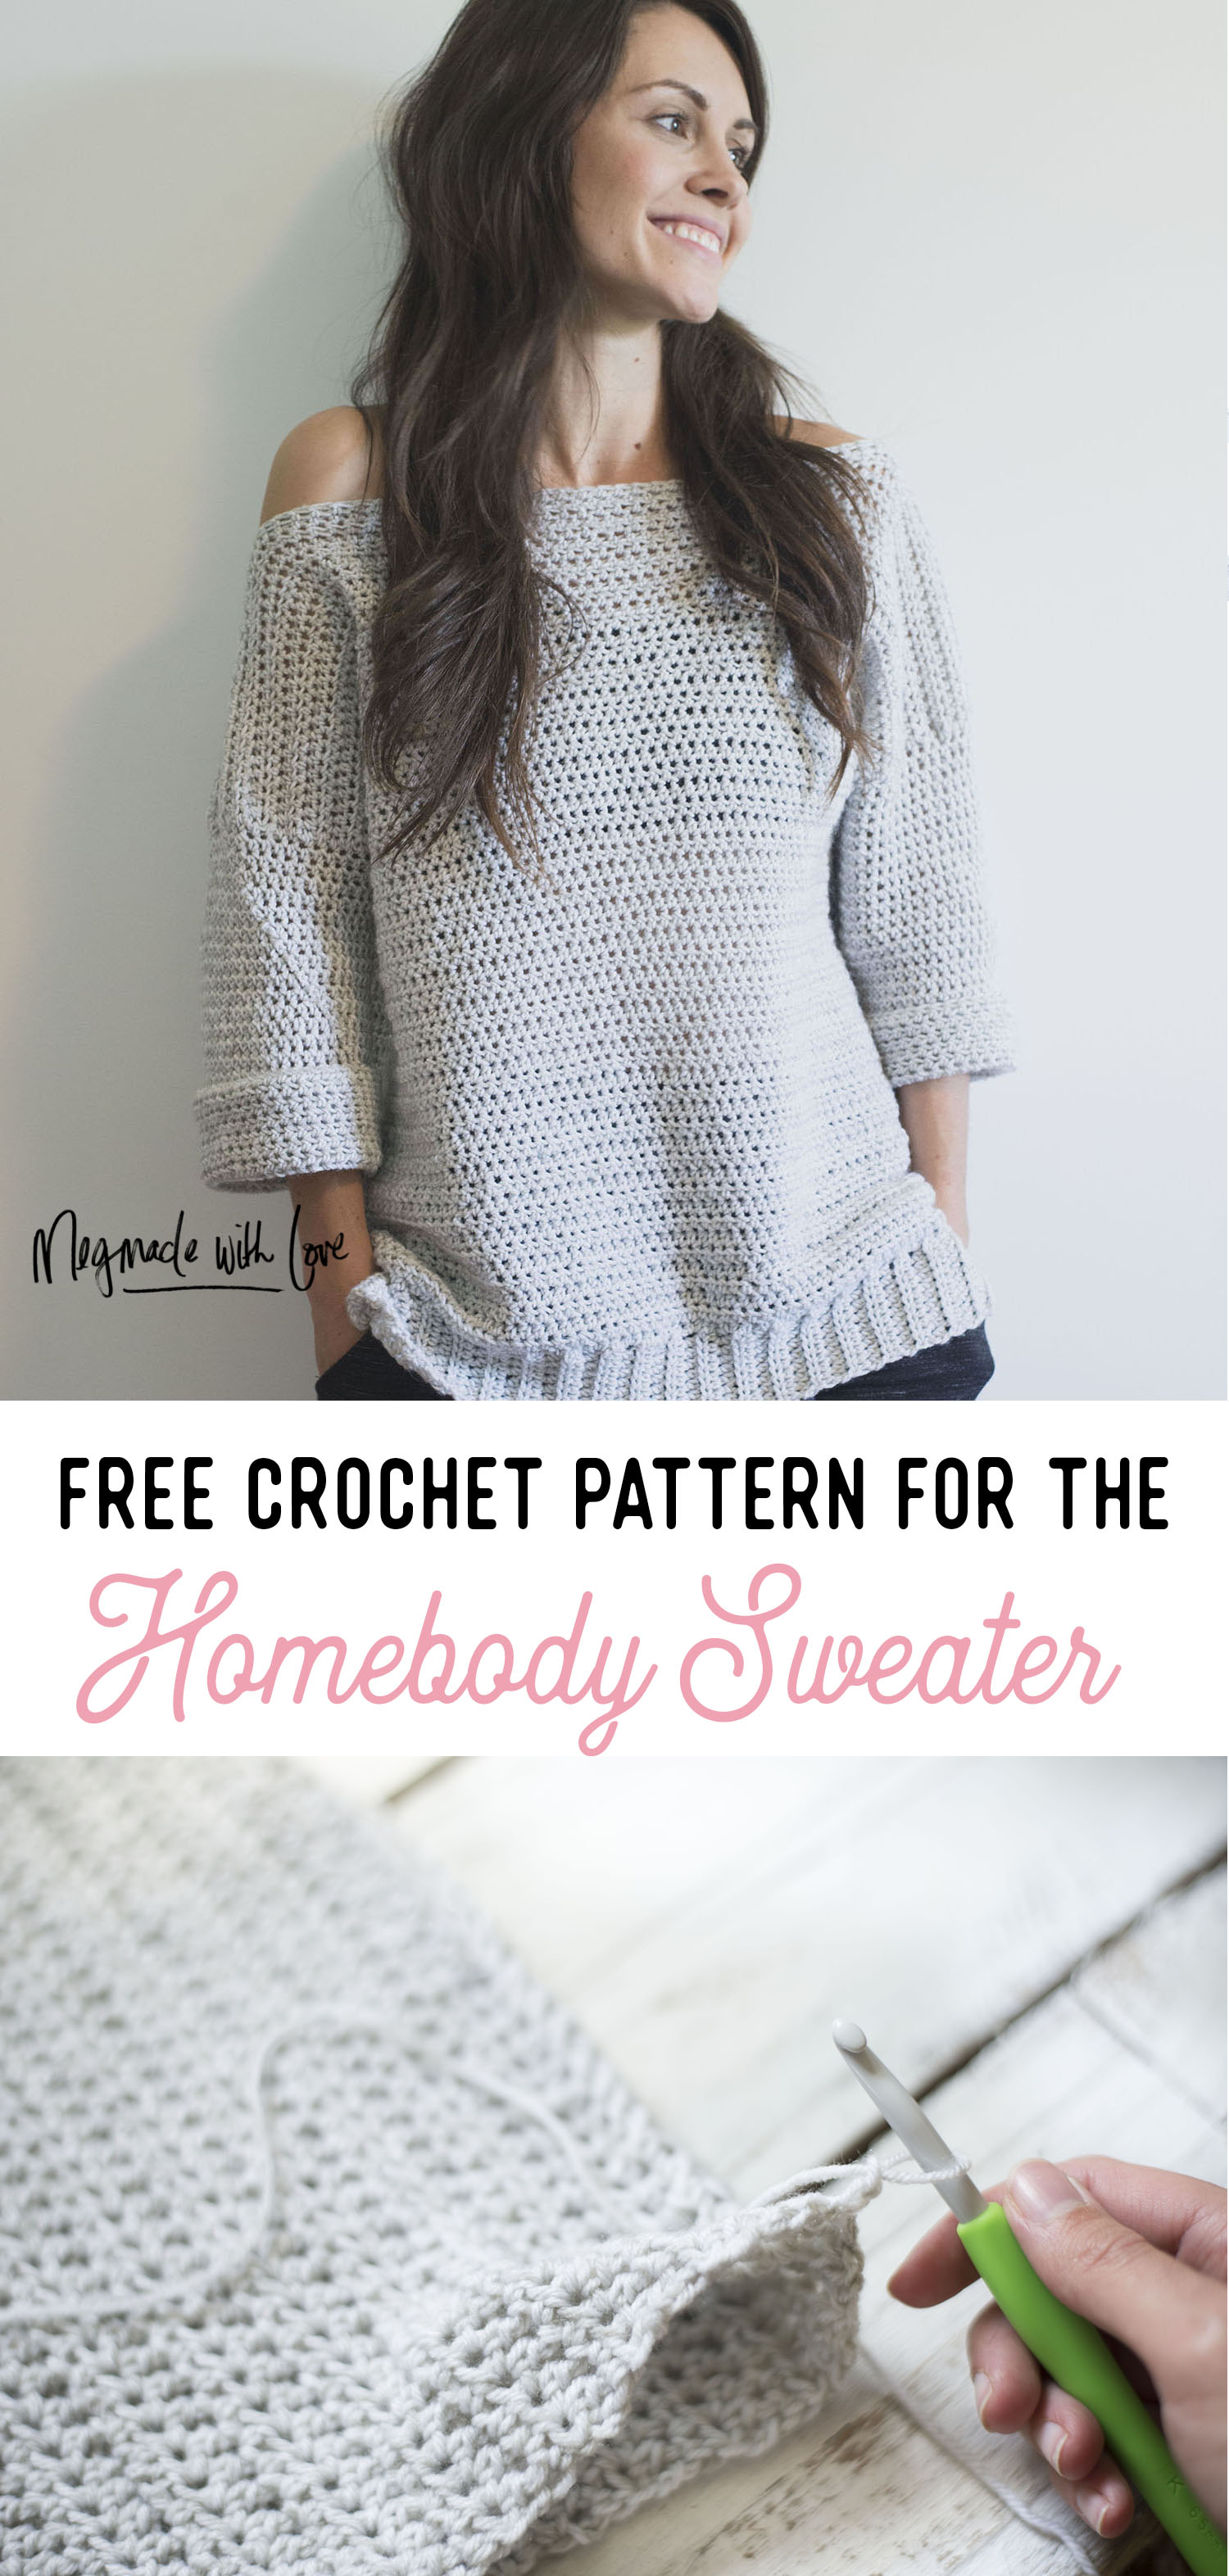 Free Crochet Pattern For The Homebody Sweater Easy Comfy And Cute Megmade With Love